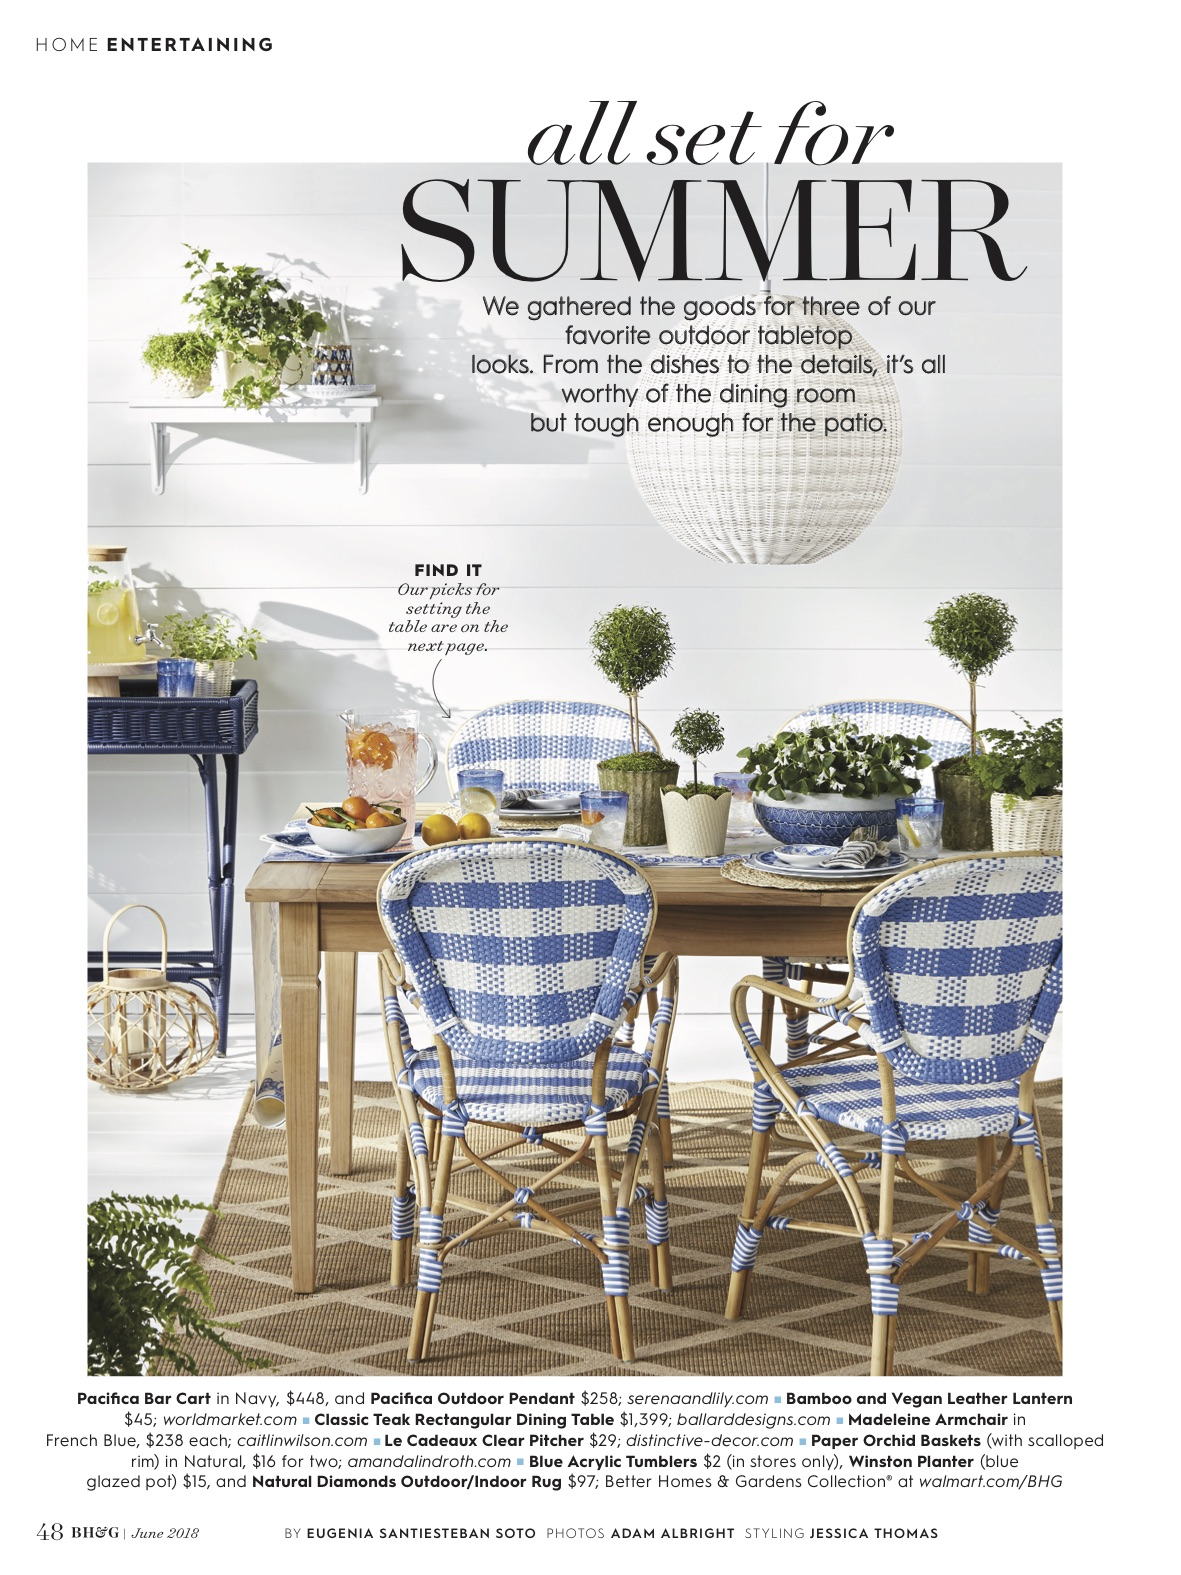 Better Homes & Gardens June 2018